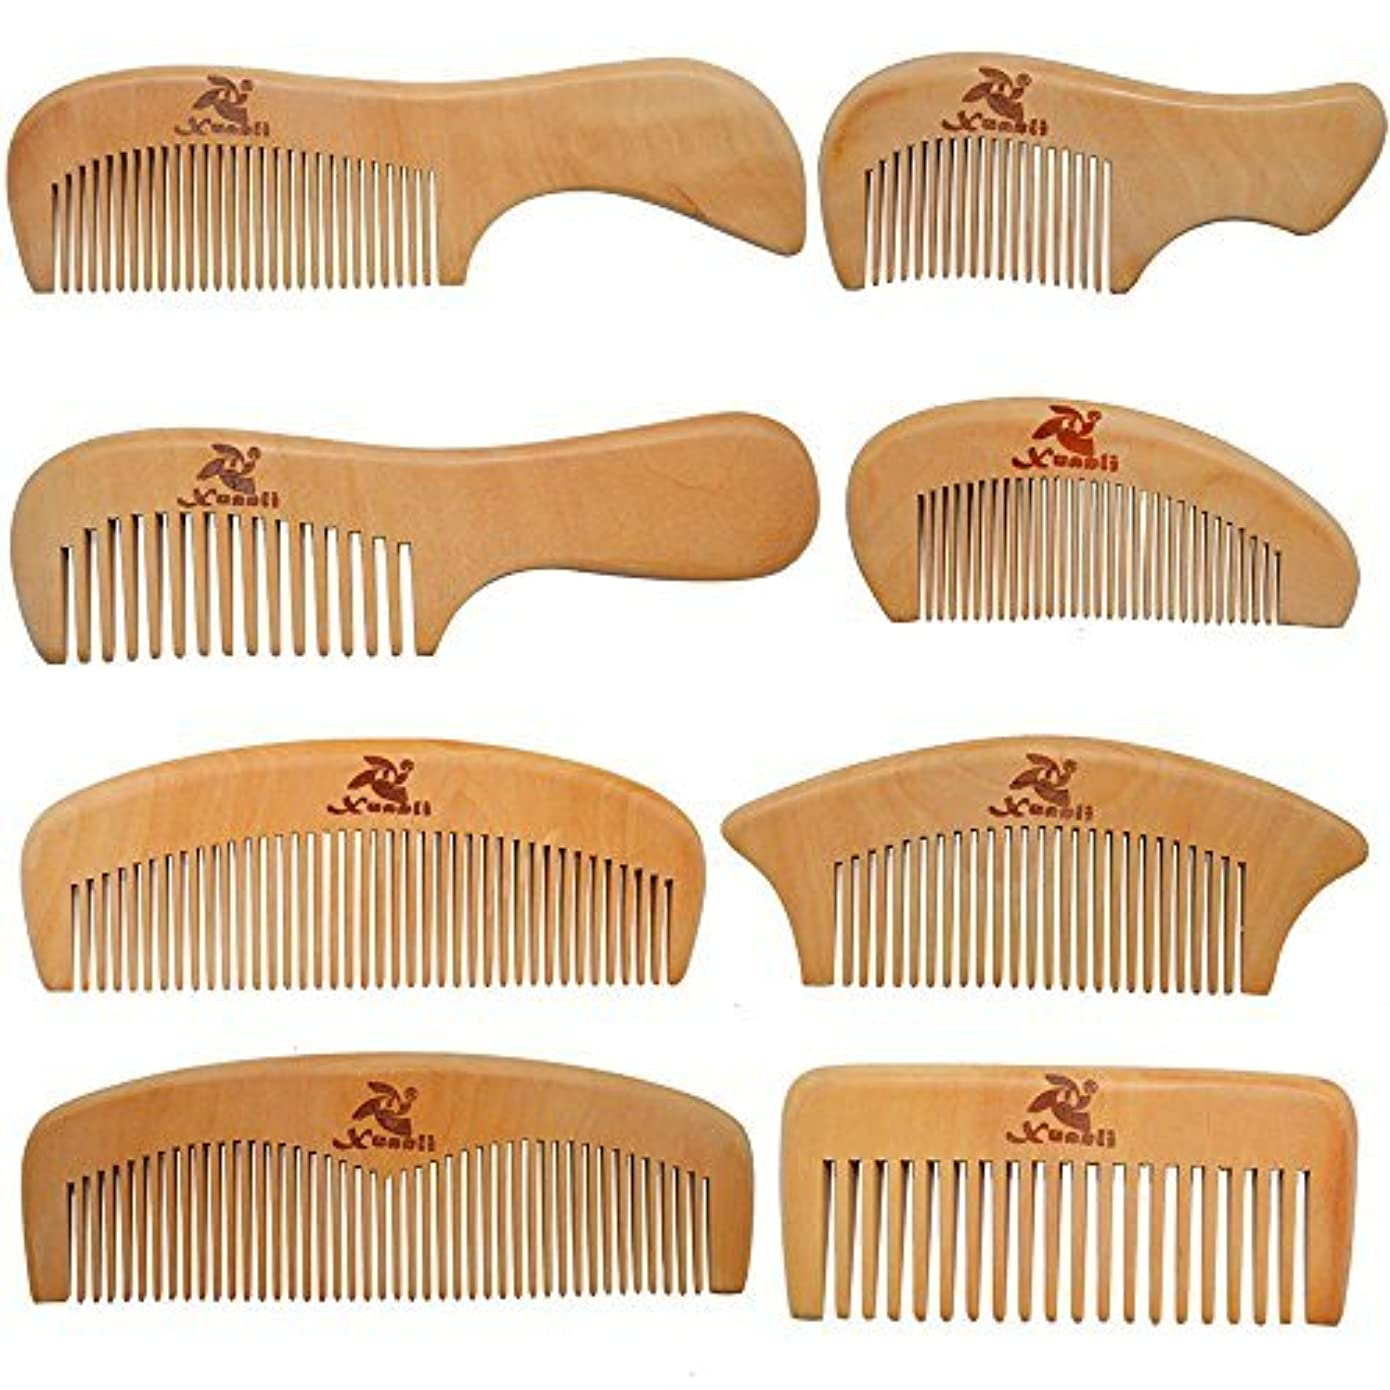 Xuanli 8 Pcs The Family Of Hair Comb set - Wood with Anti-Static & No Snag Handmade Brush for Beard, Head Hair...